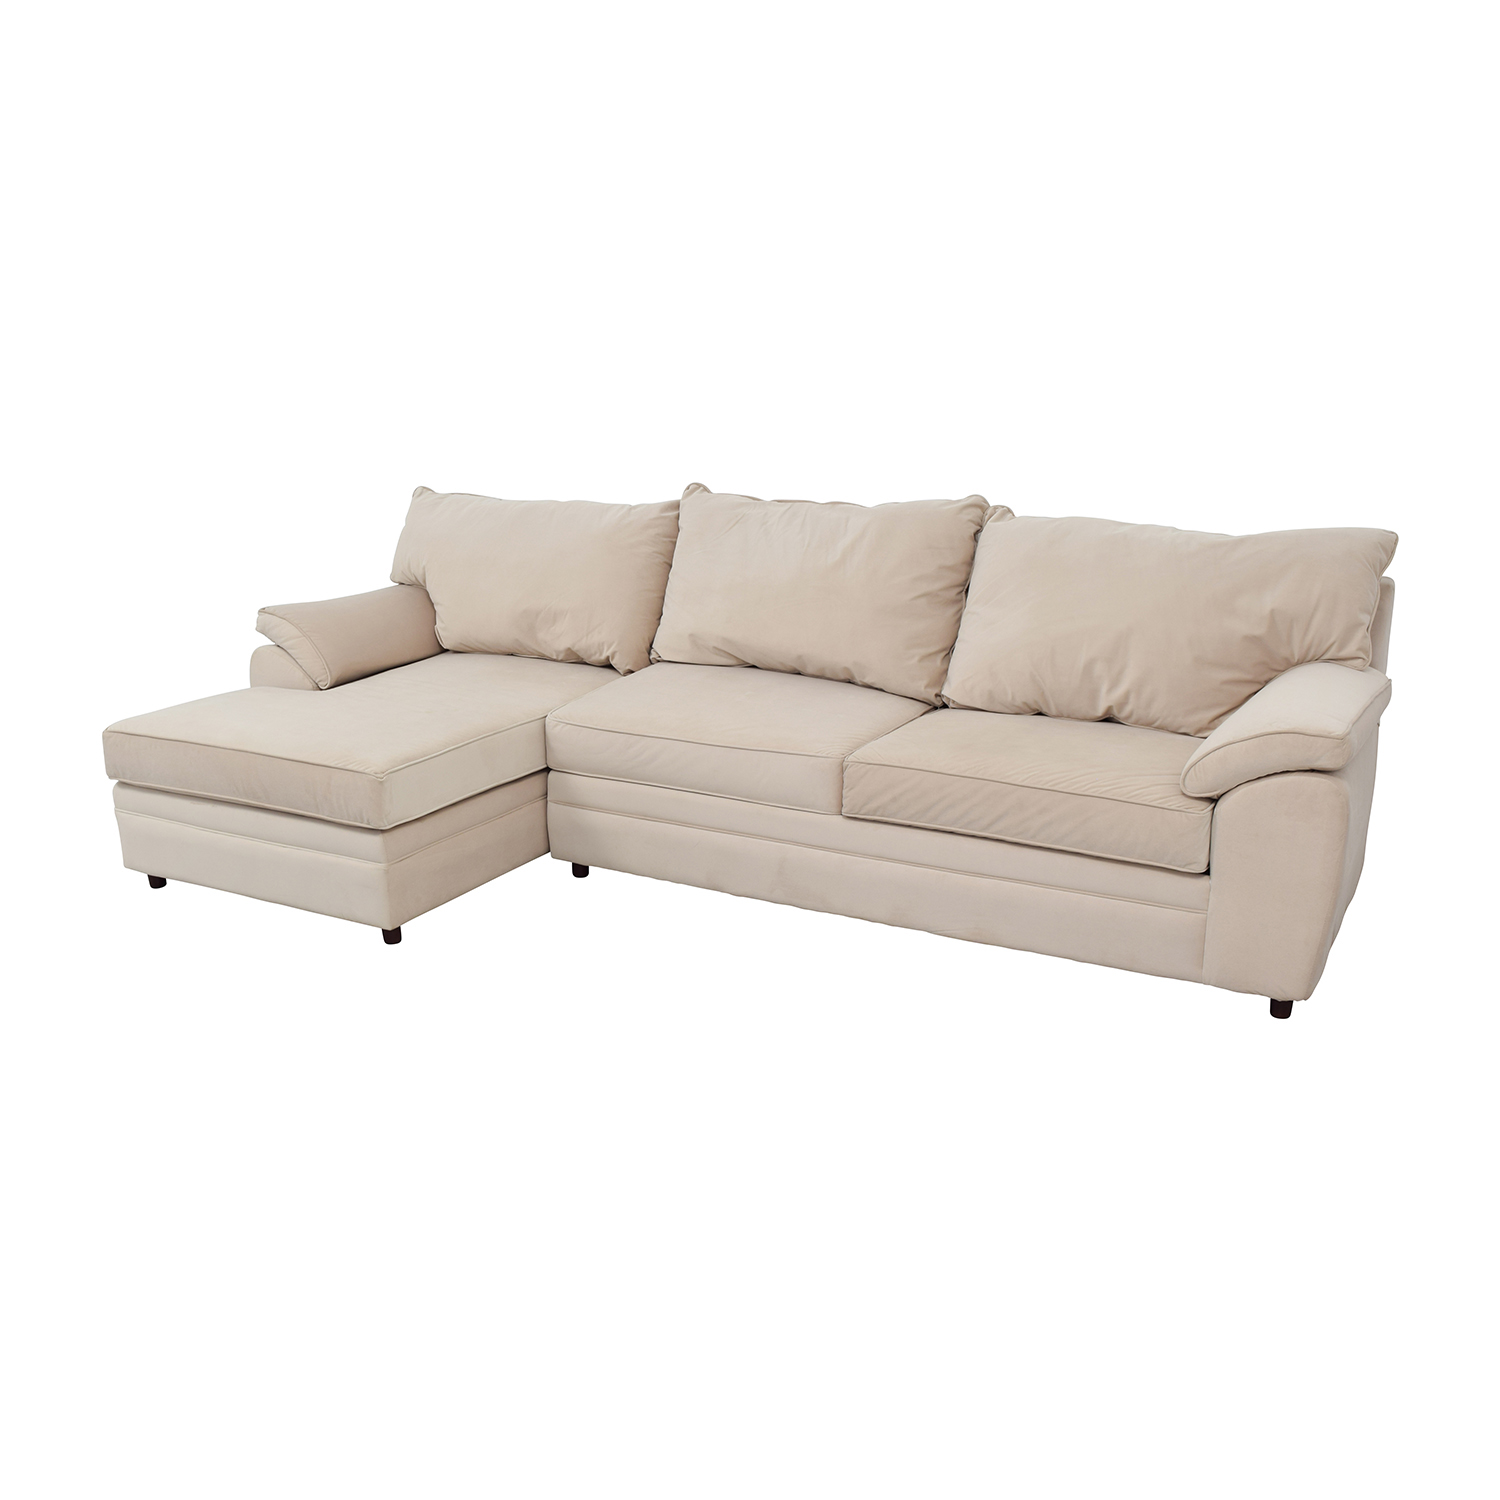 Bobs Furniture Bob Furniture Off-White Right Chaise Sectional second hand